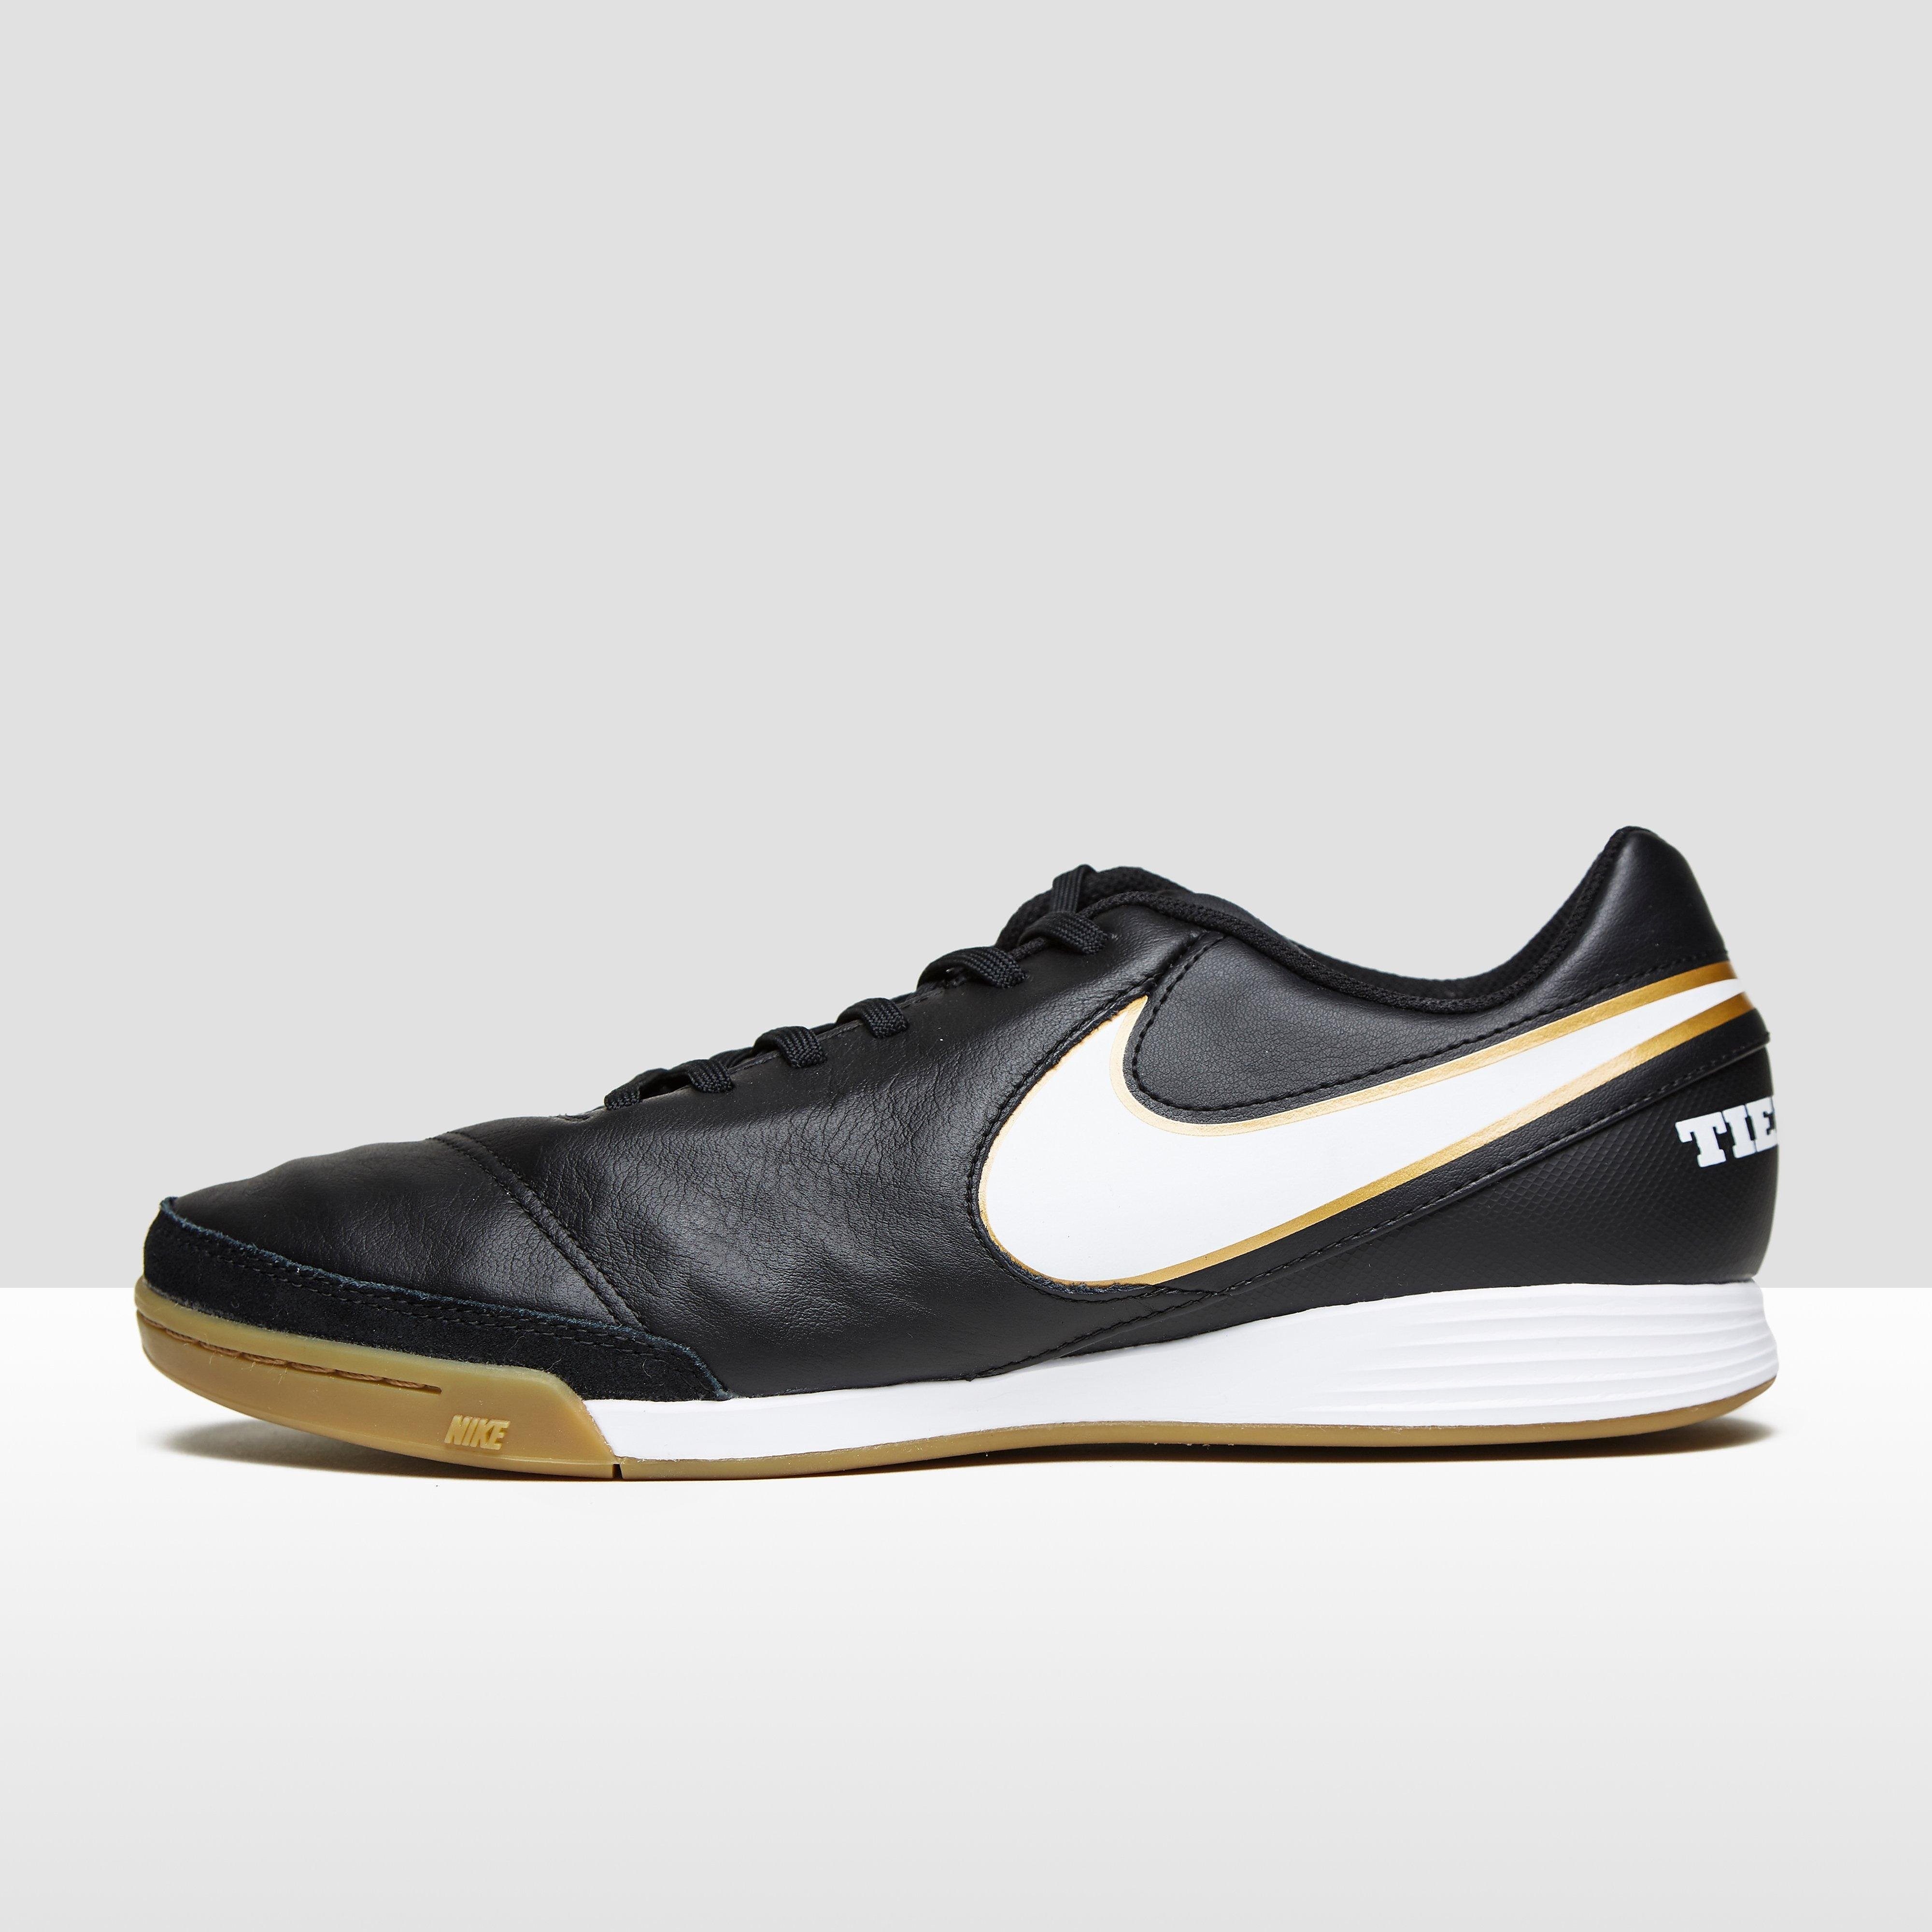 NIKE TIEMPO GENIO II LEATHER IC VOETBALSCHOENEN HEREN